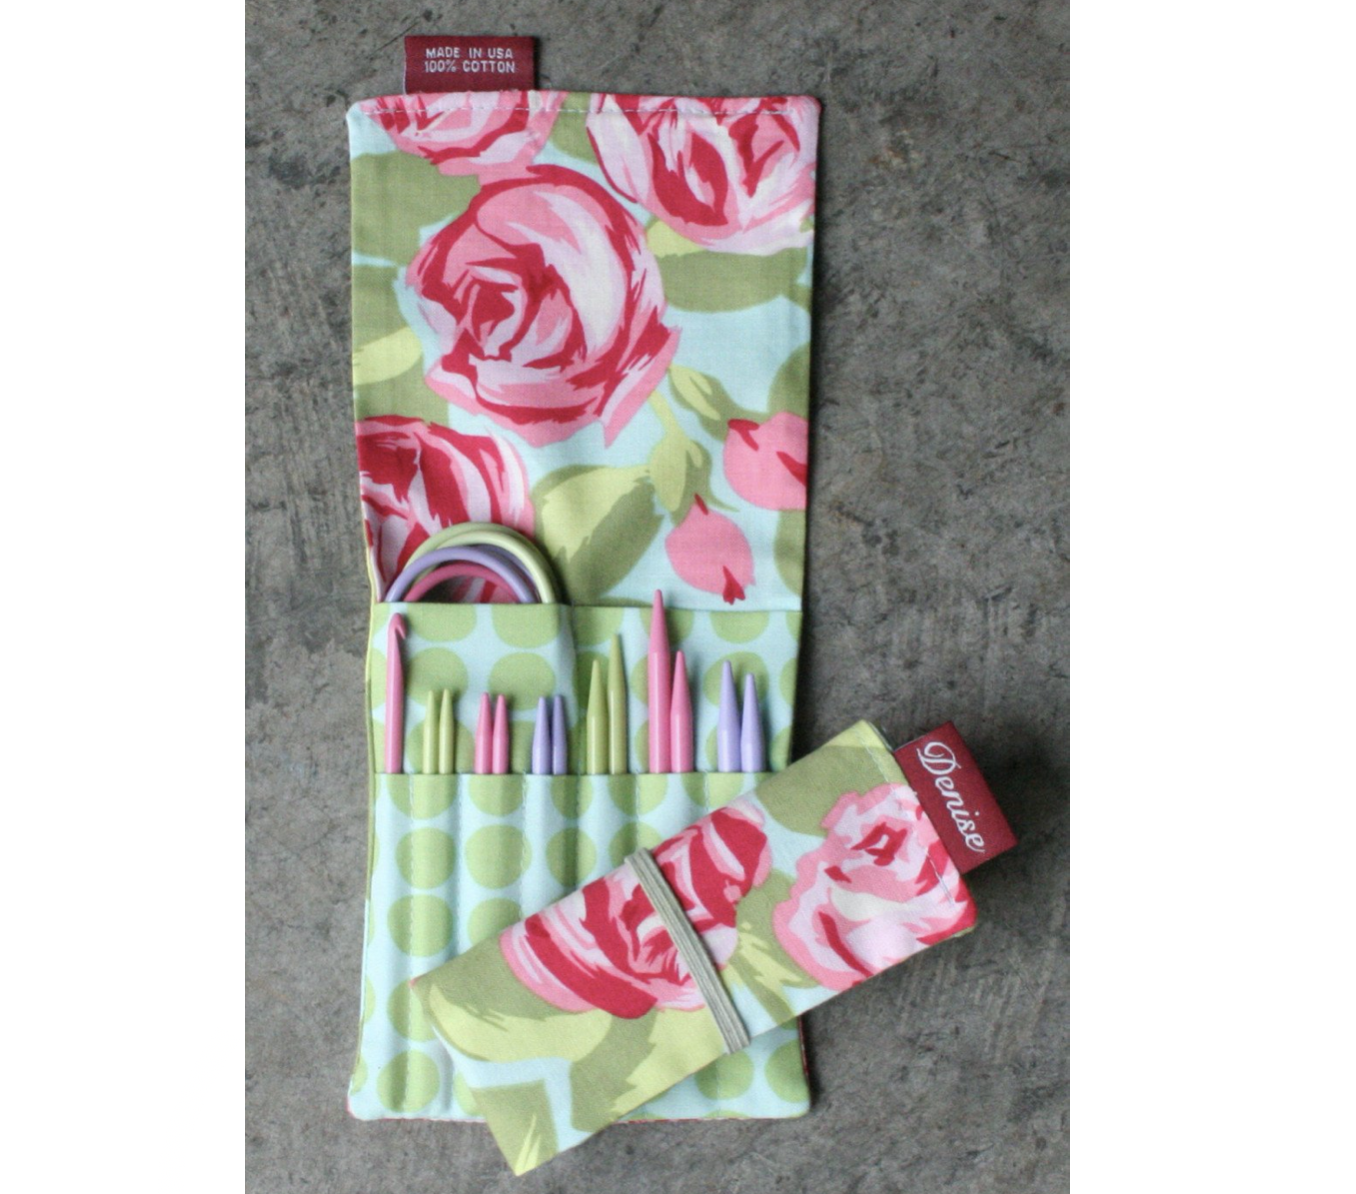 Denise2go Stickset (Roses & Dots), Denise